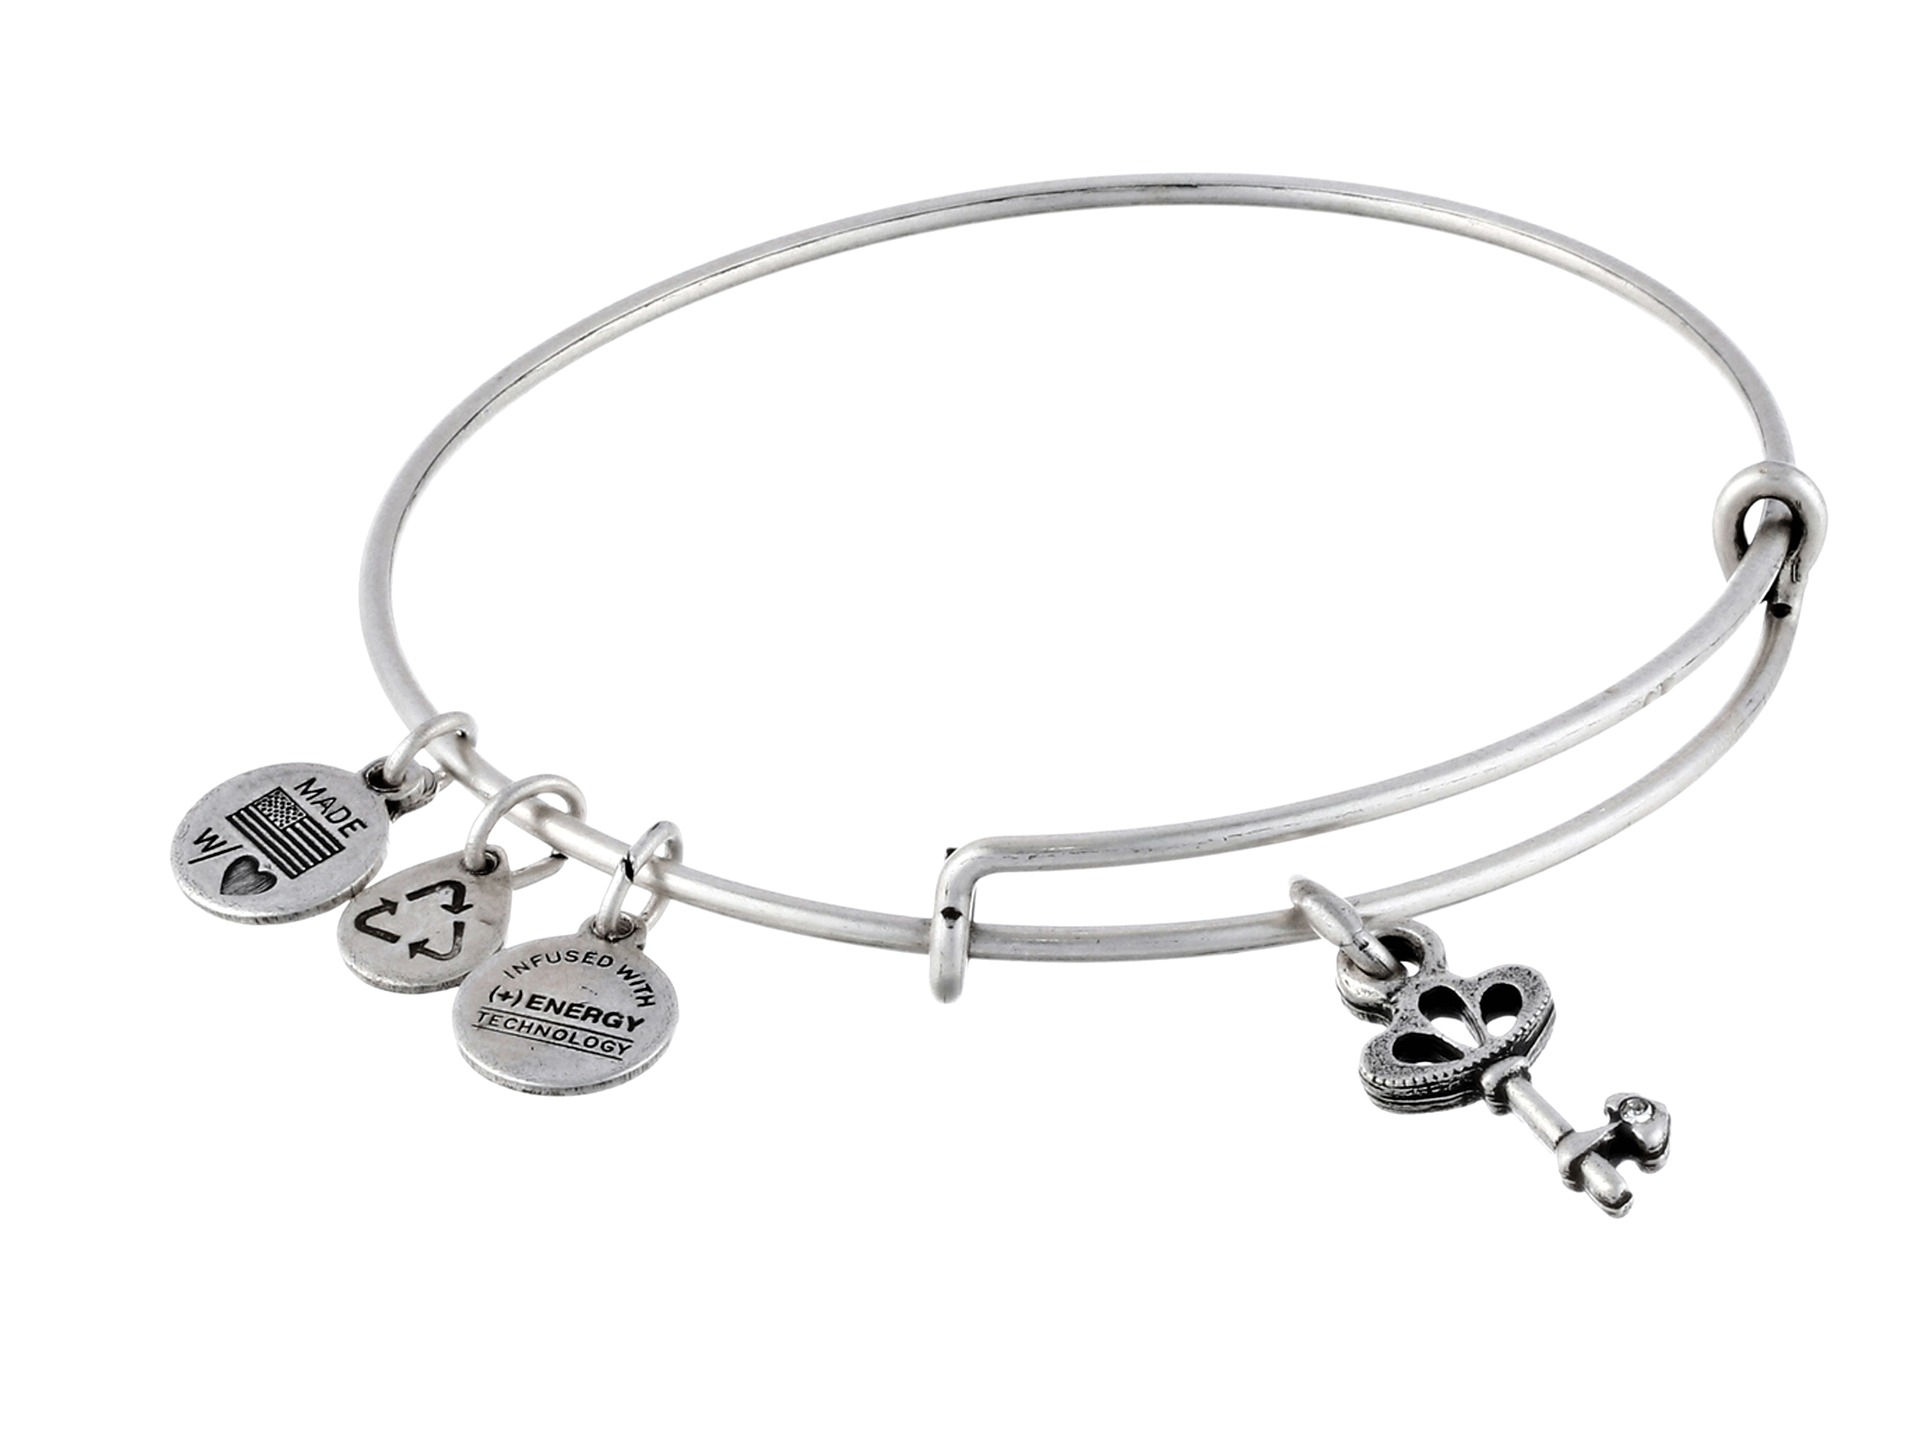 bangles daughter available goddaughter size request silver elegant charm god bracelet adjustable kids bangle upon